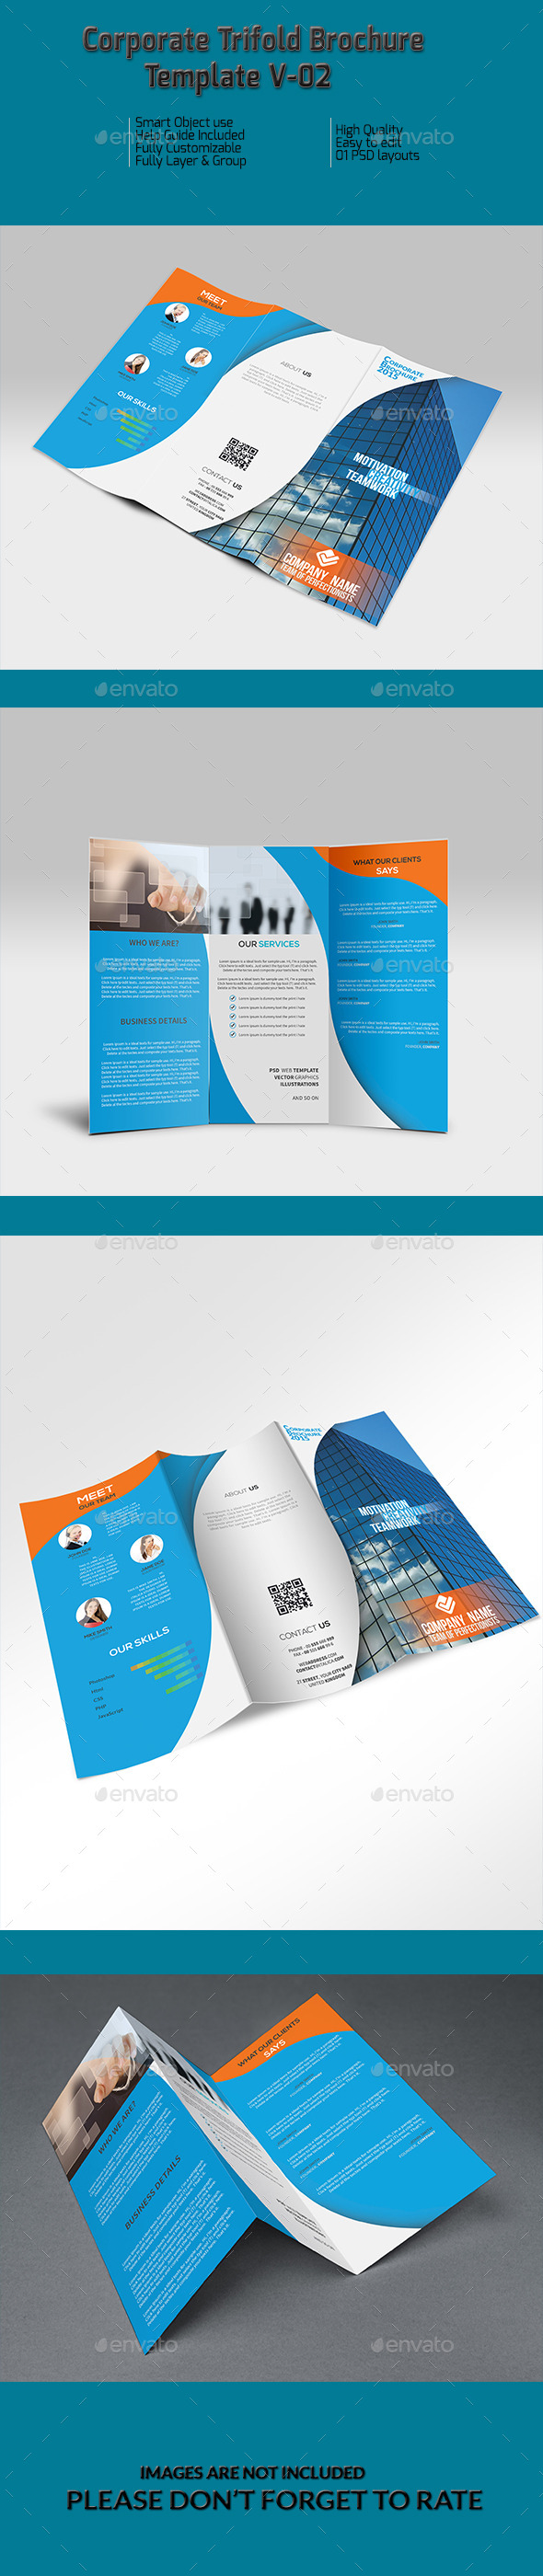 GraphicRiver Corporate Trifold Brochure Template V-02 10129365